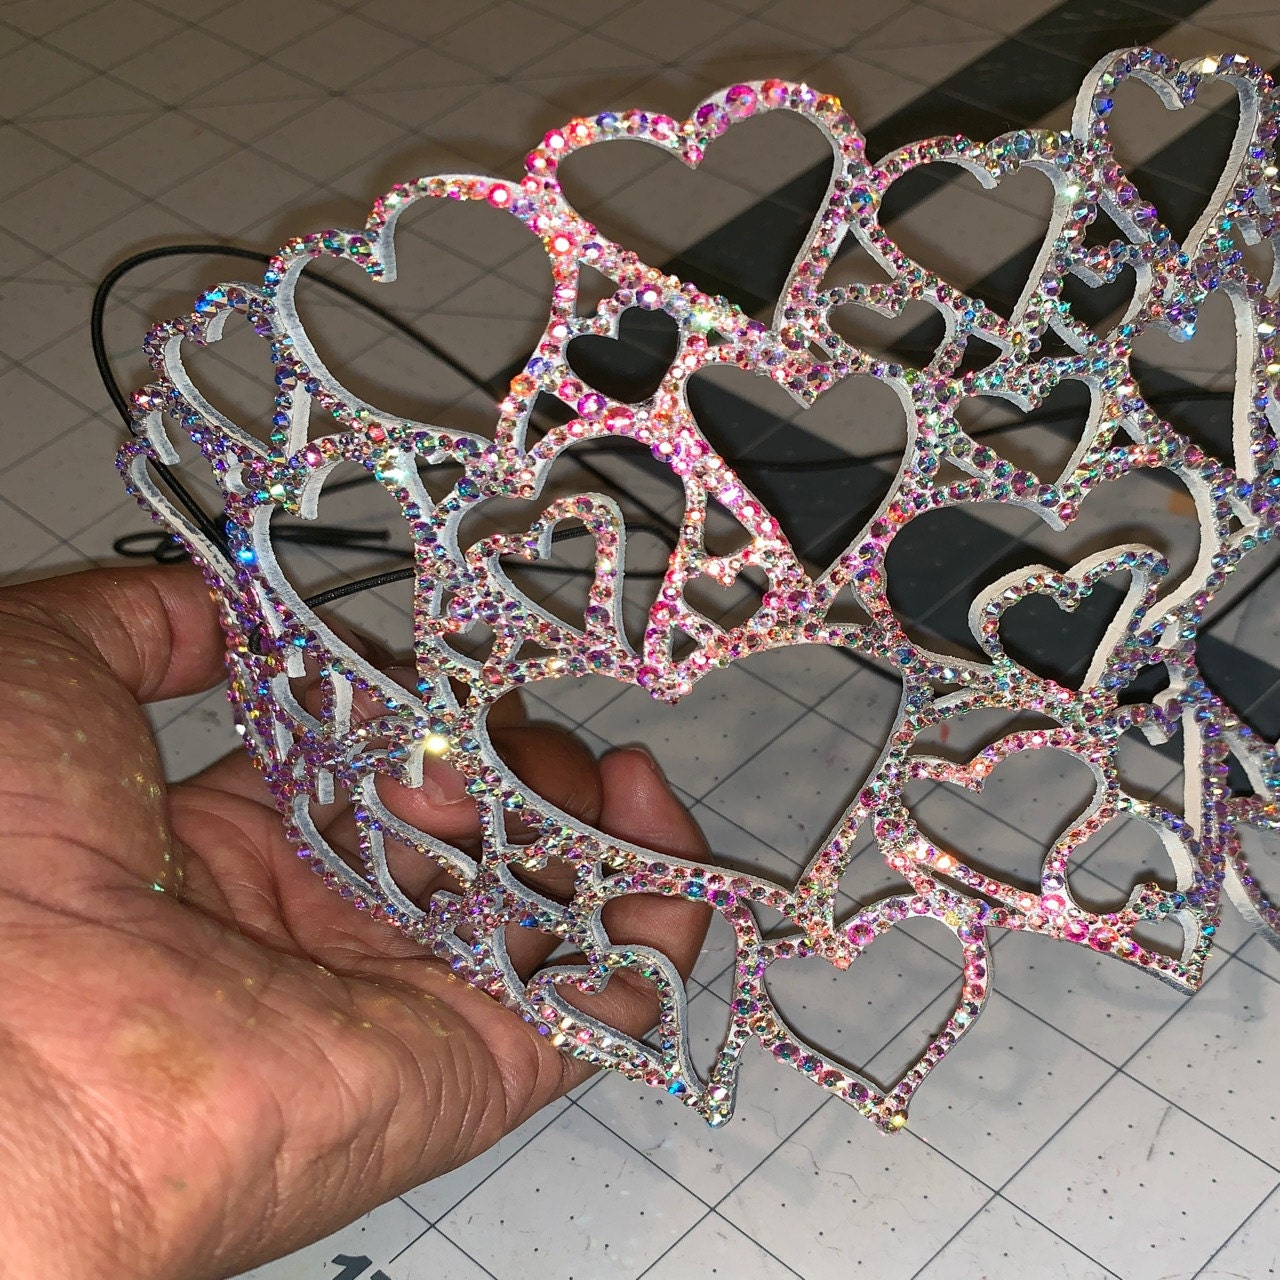 Beadsotted added a photo of their purchase